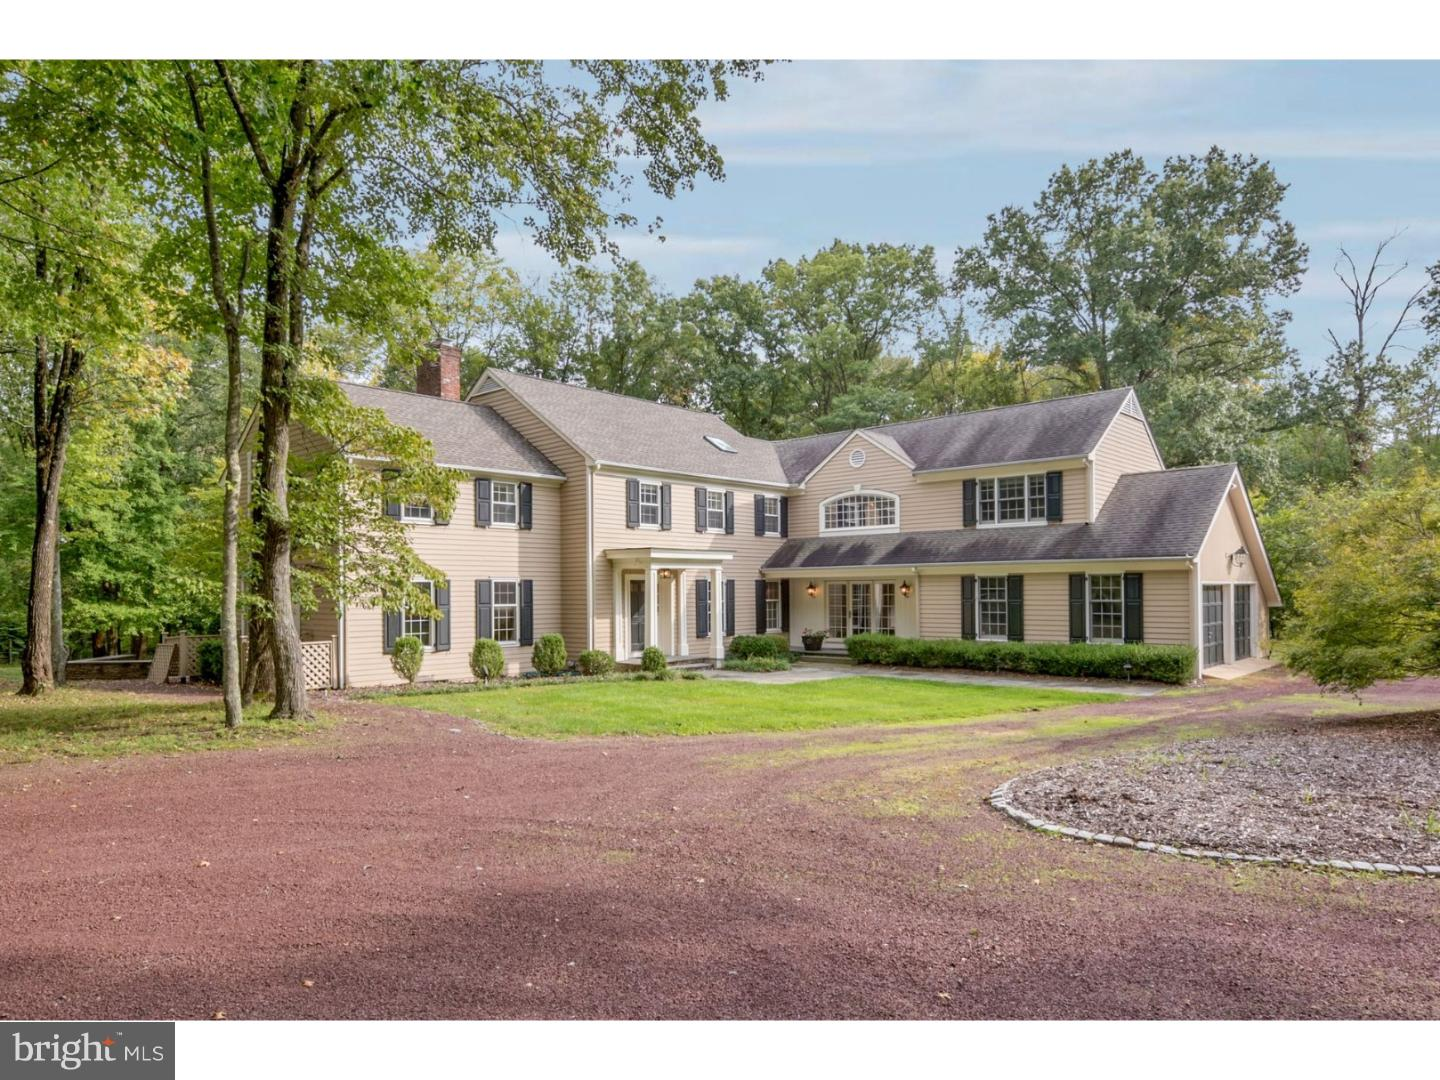 Property for Sale at 34 STUART CLOSE Princeton, New Jersey 08540 United States